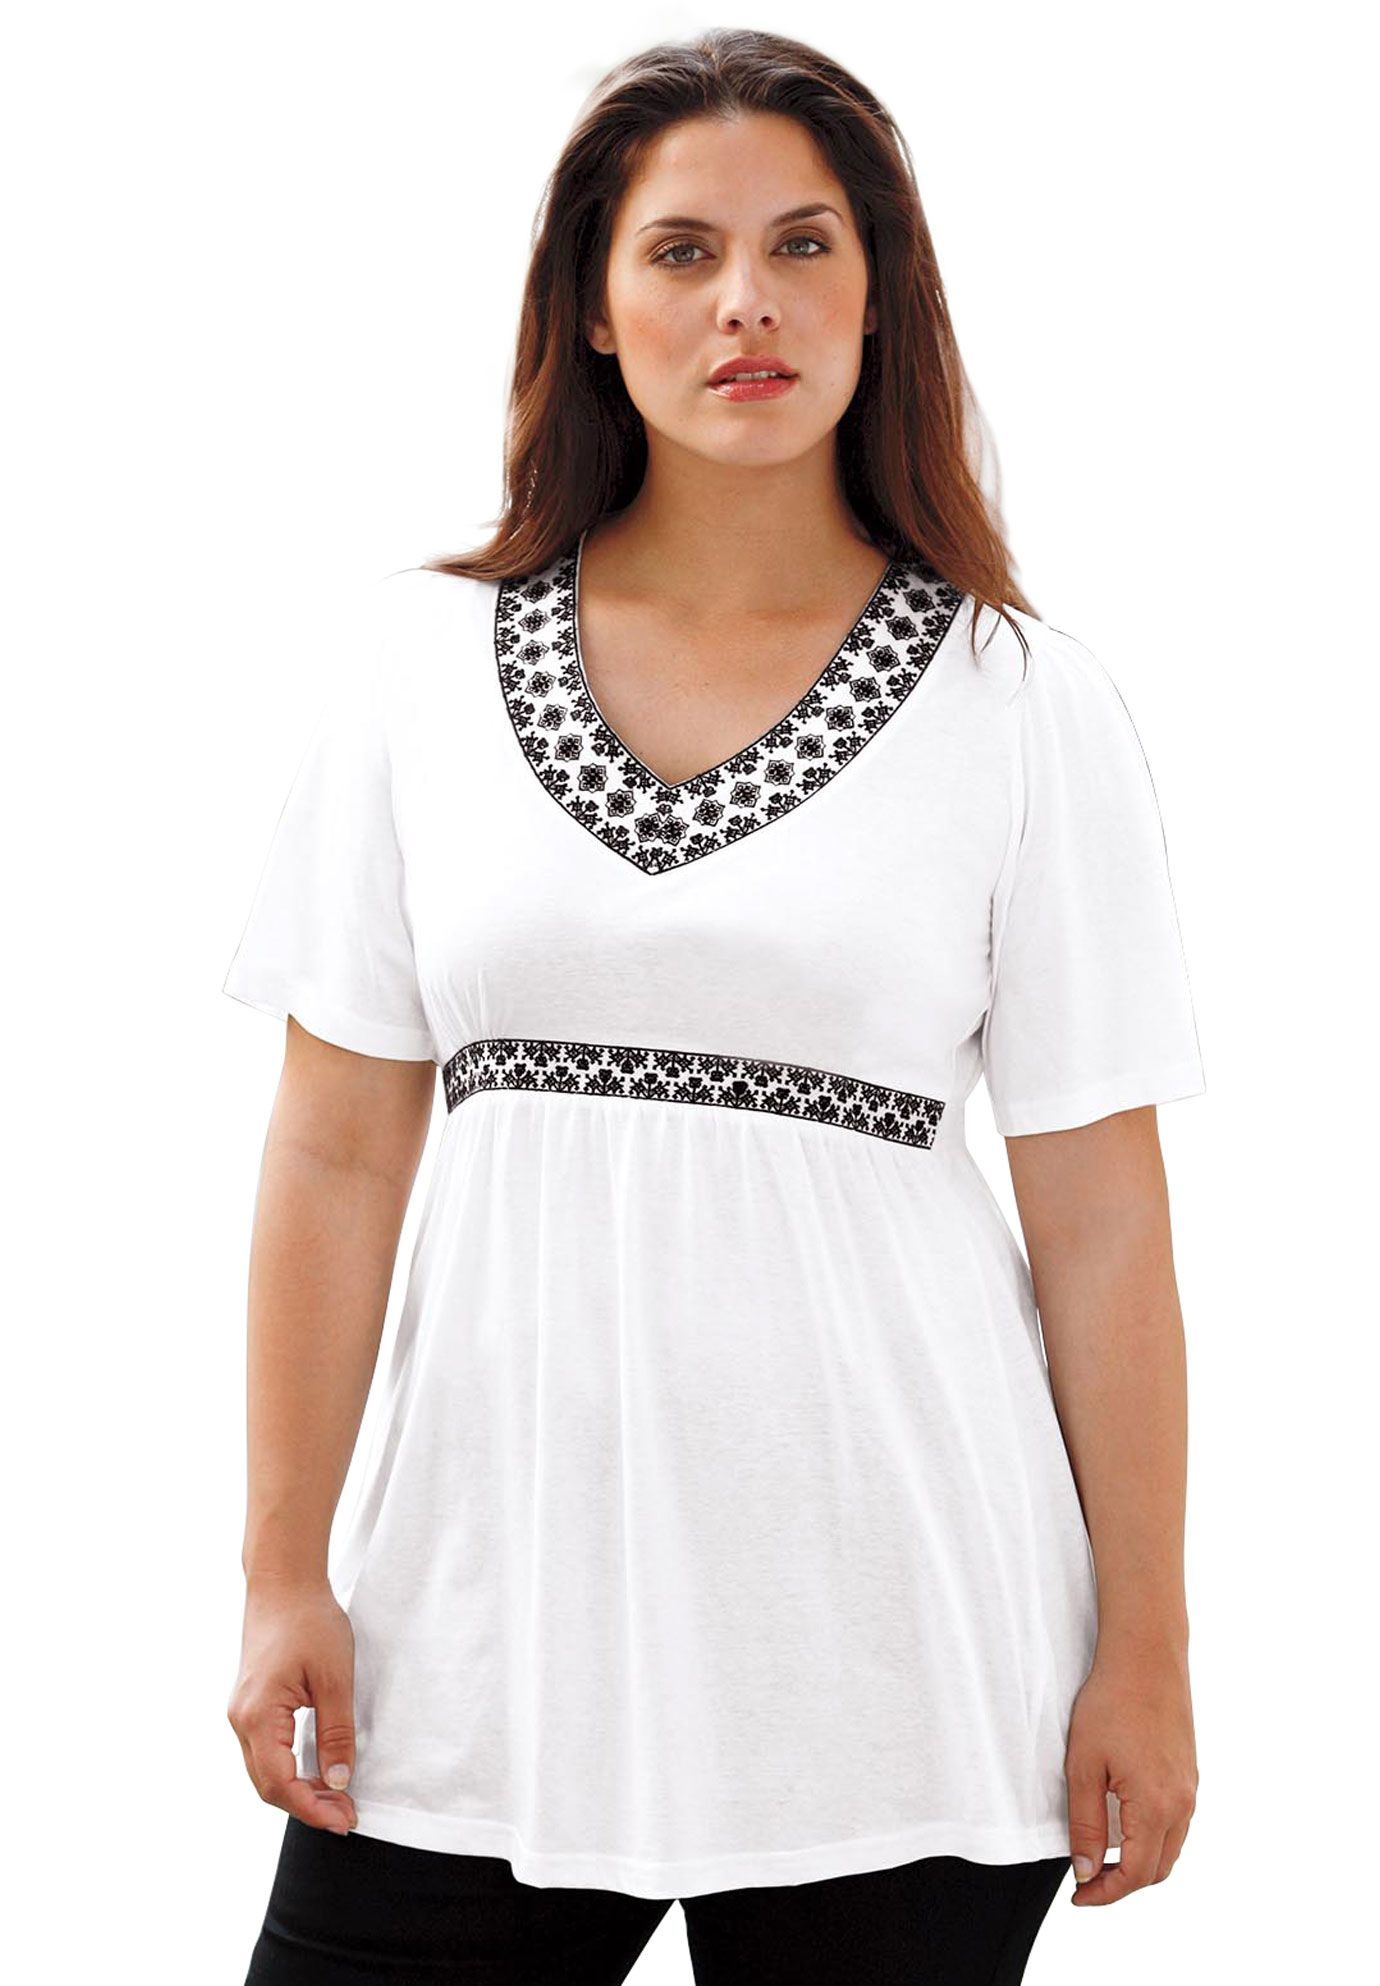 Plus Size : Tops & Tees for Women | Woman Within | for me ...